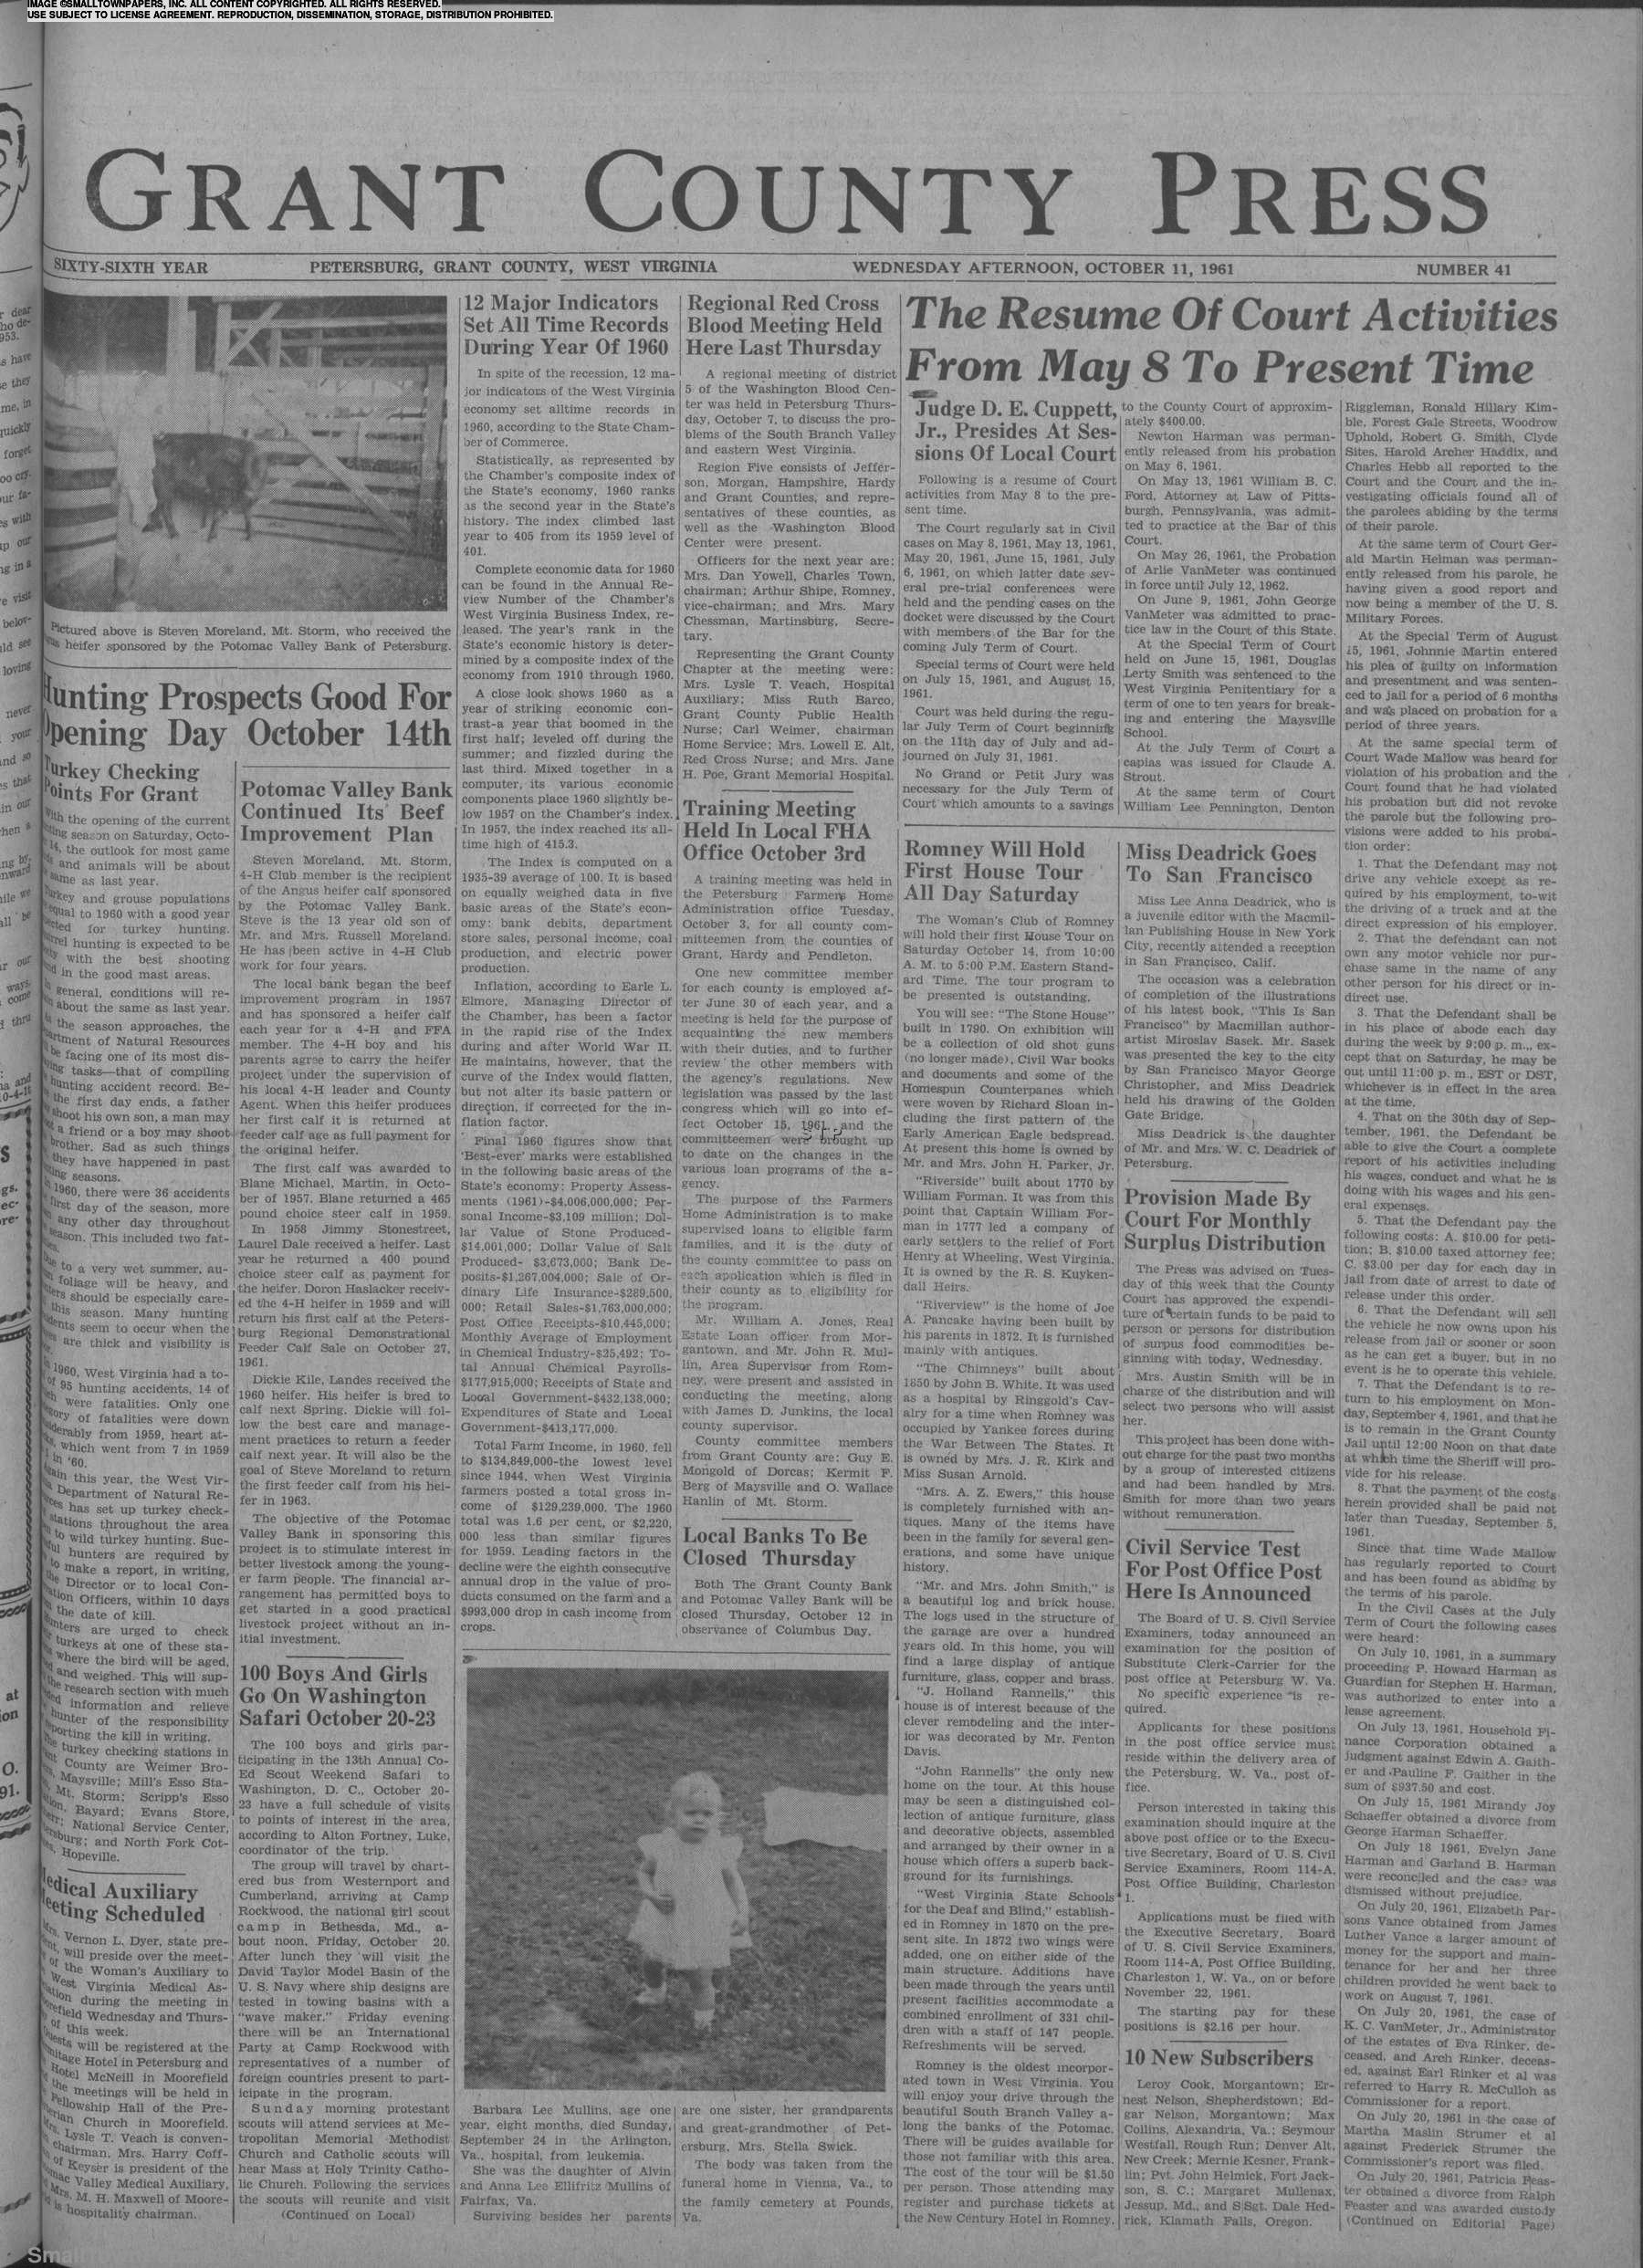 Grant County Press October 11, 1961: Page 1